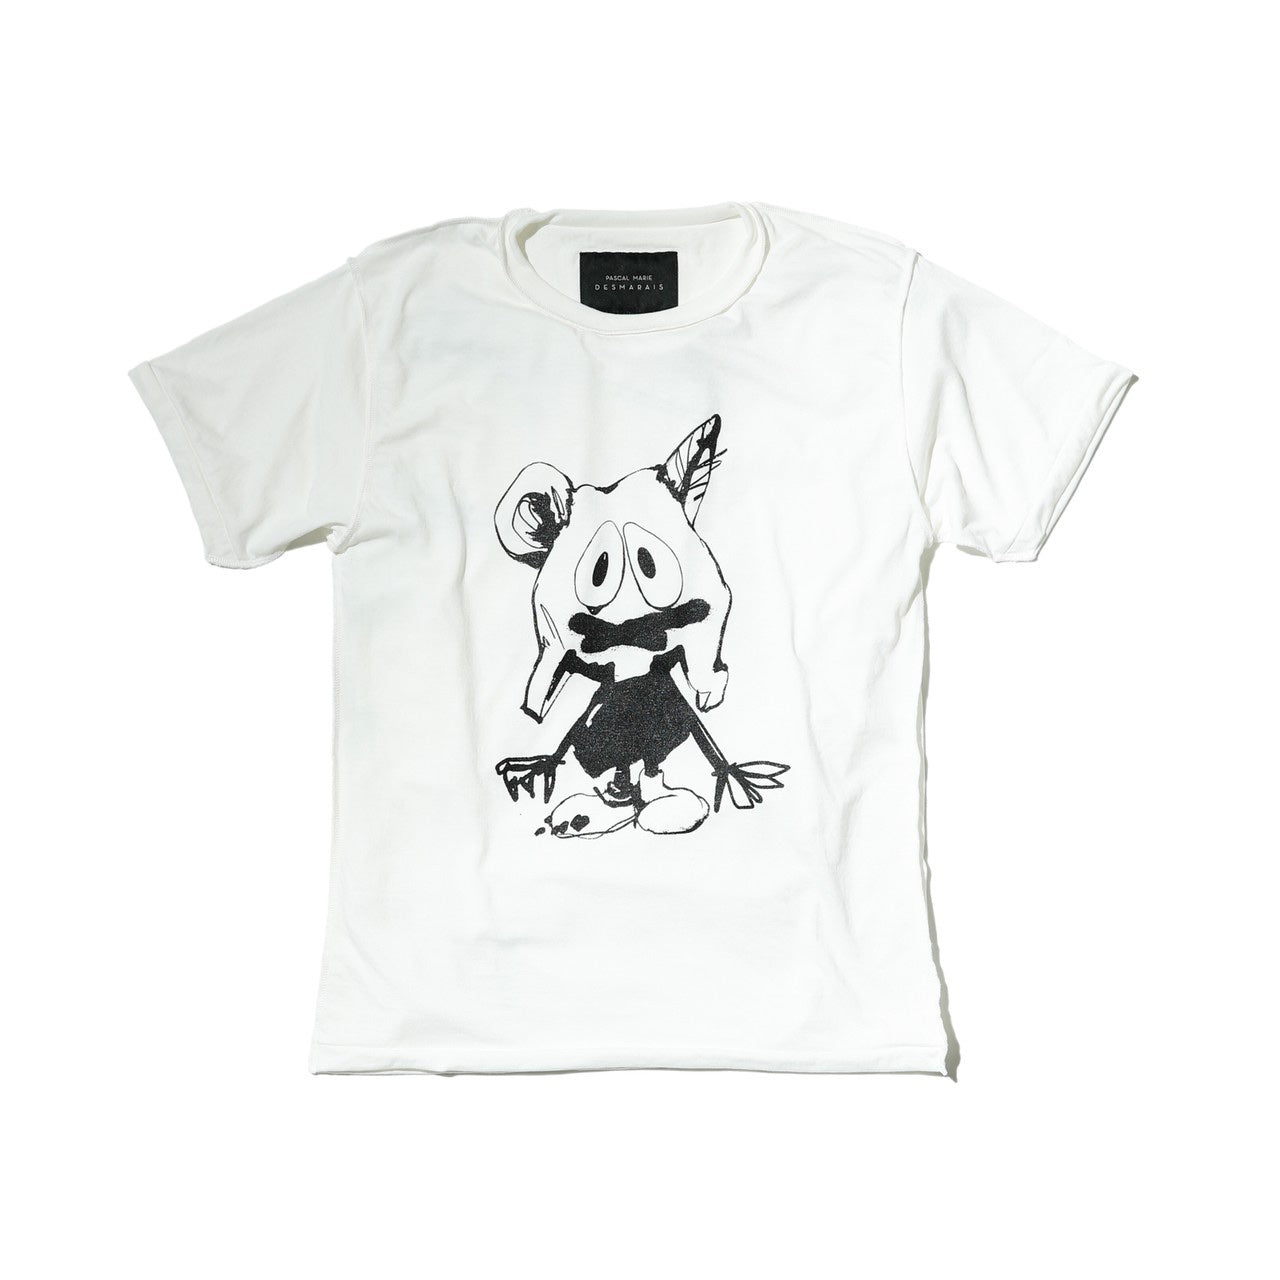 PLASTIC MONSTER T-Shirt A